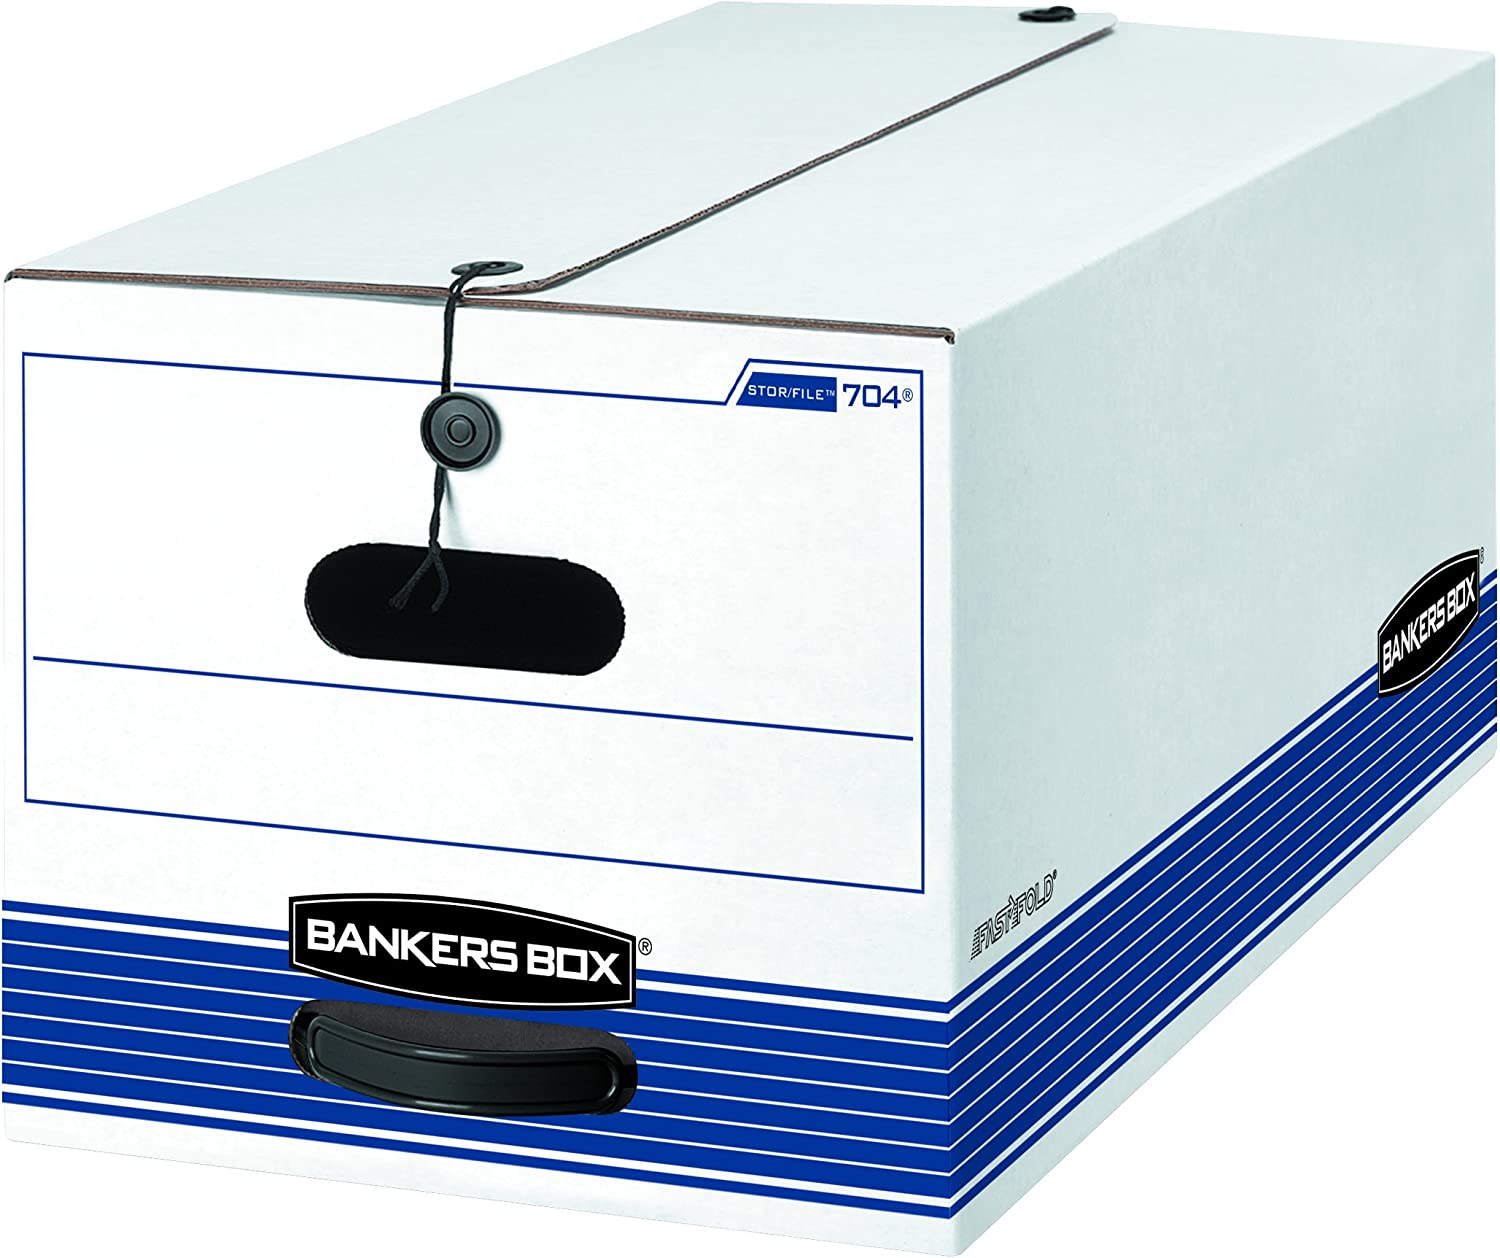 Bankers Same day shipping Box Store File Medium Duty String Storage B with Boxes Ranking TOP8